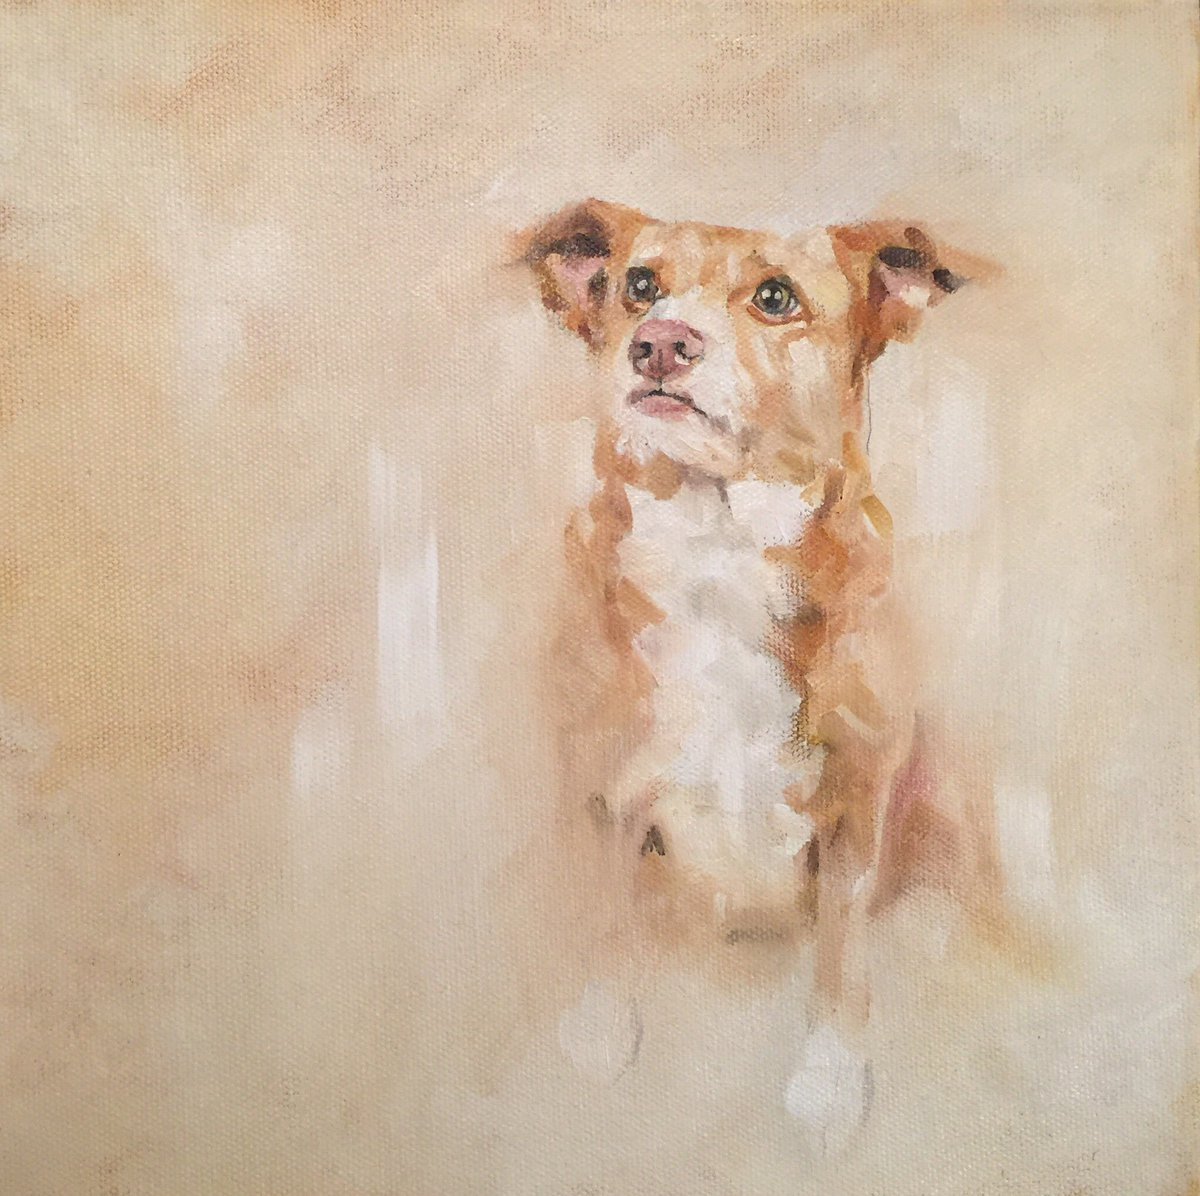 Latest commission &#39;Franzi&#39; 10&quot;x10&quot; oil on canvas reference photo by Tanja Hofer photographe #petortrait #dogsoftwitter <br>http://pic.twitter.com/HYOz6yEqGw